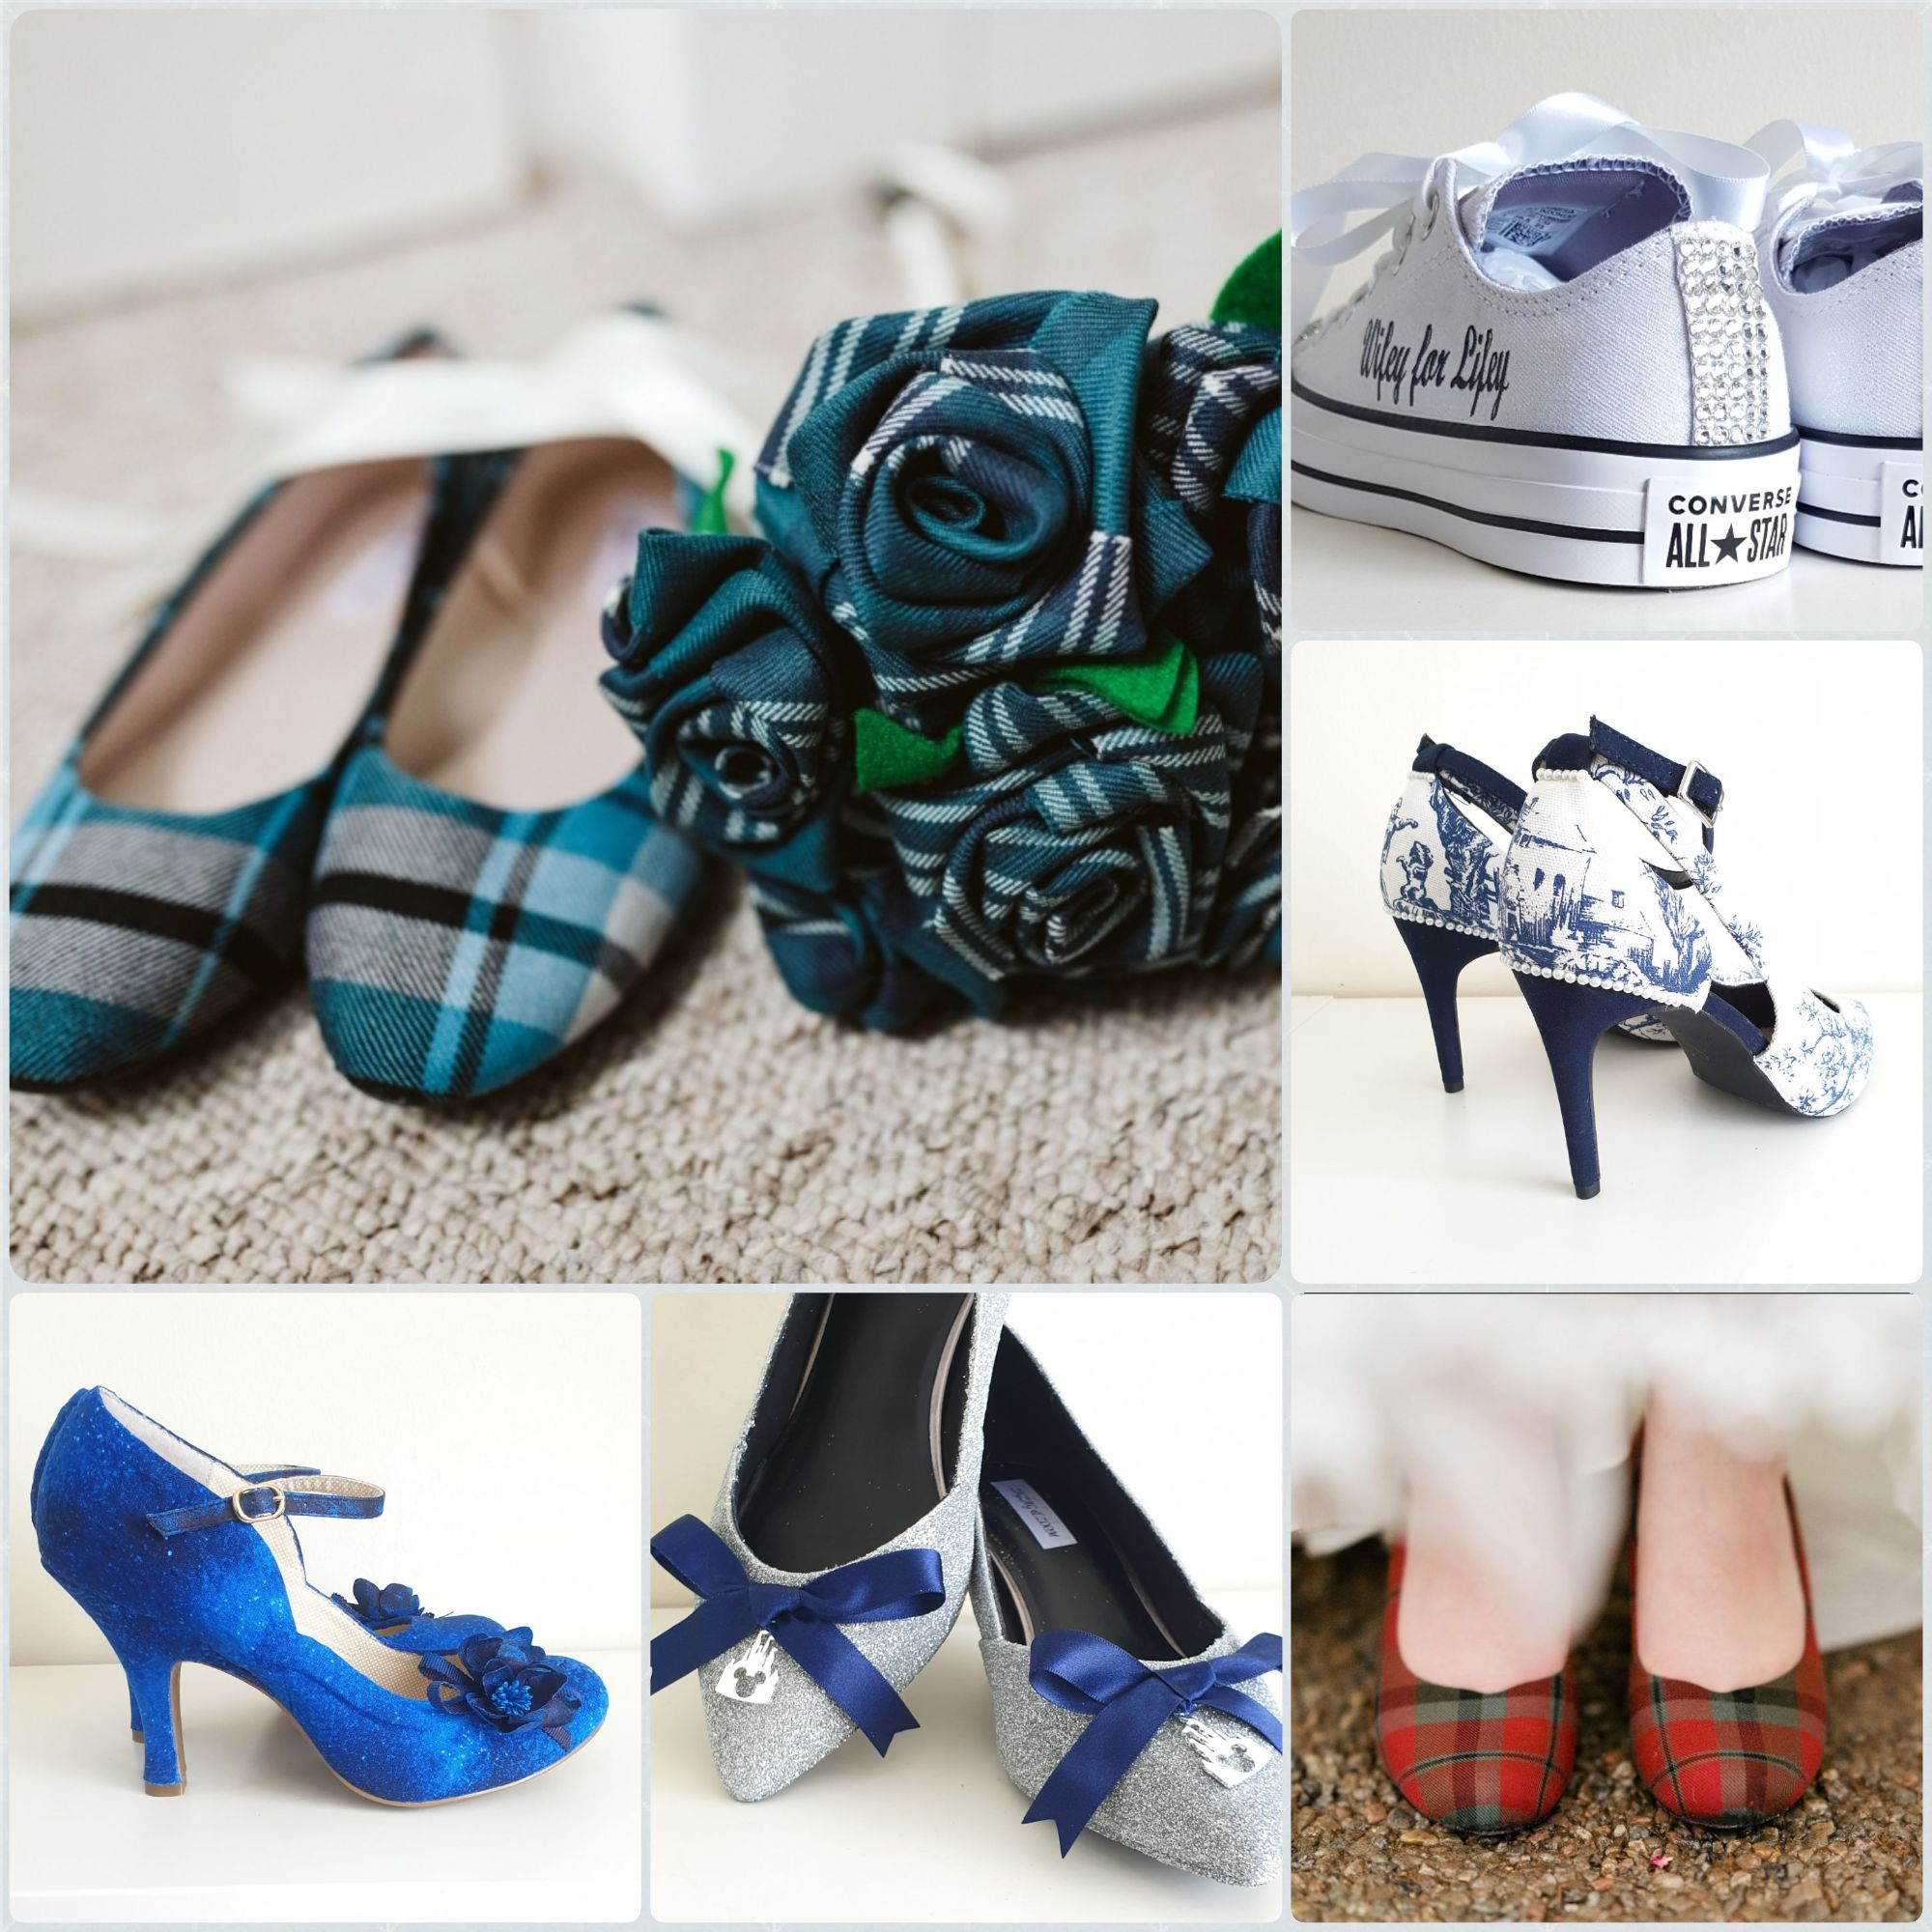 Custom designed wedding shoes, unicorn heels, converse, tartan heels, lego shoes, custom converse, crystal converse